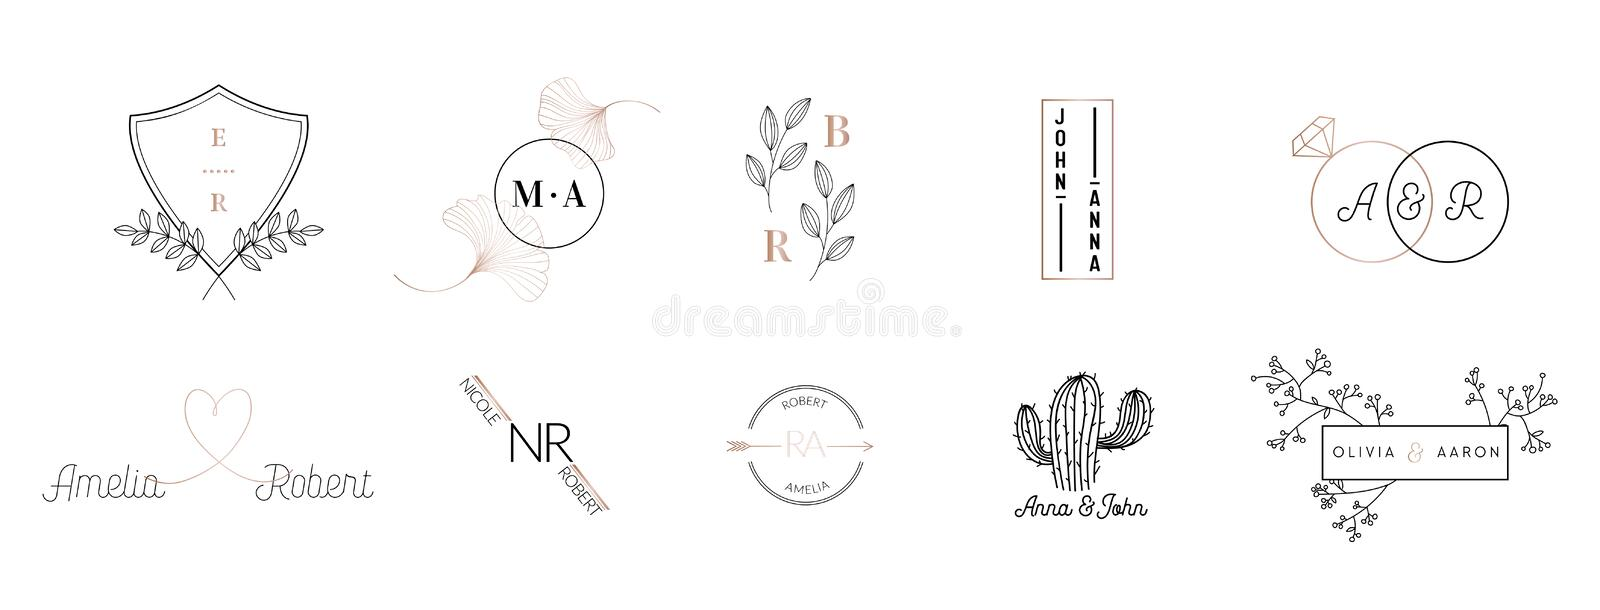 Wedding monogram logos collection, hand drawn modern minimalistic floral templates for Invitation cards, Save the Date vector illustration